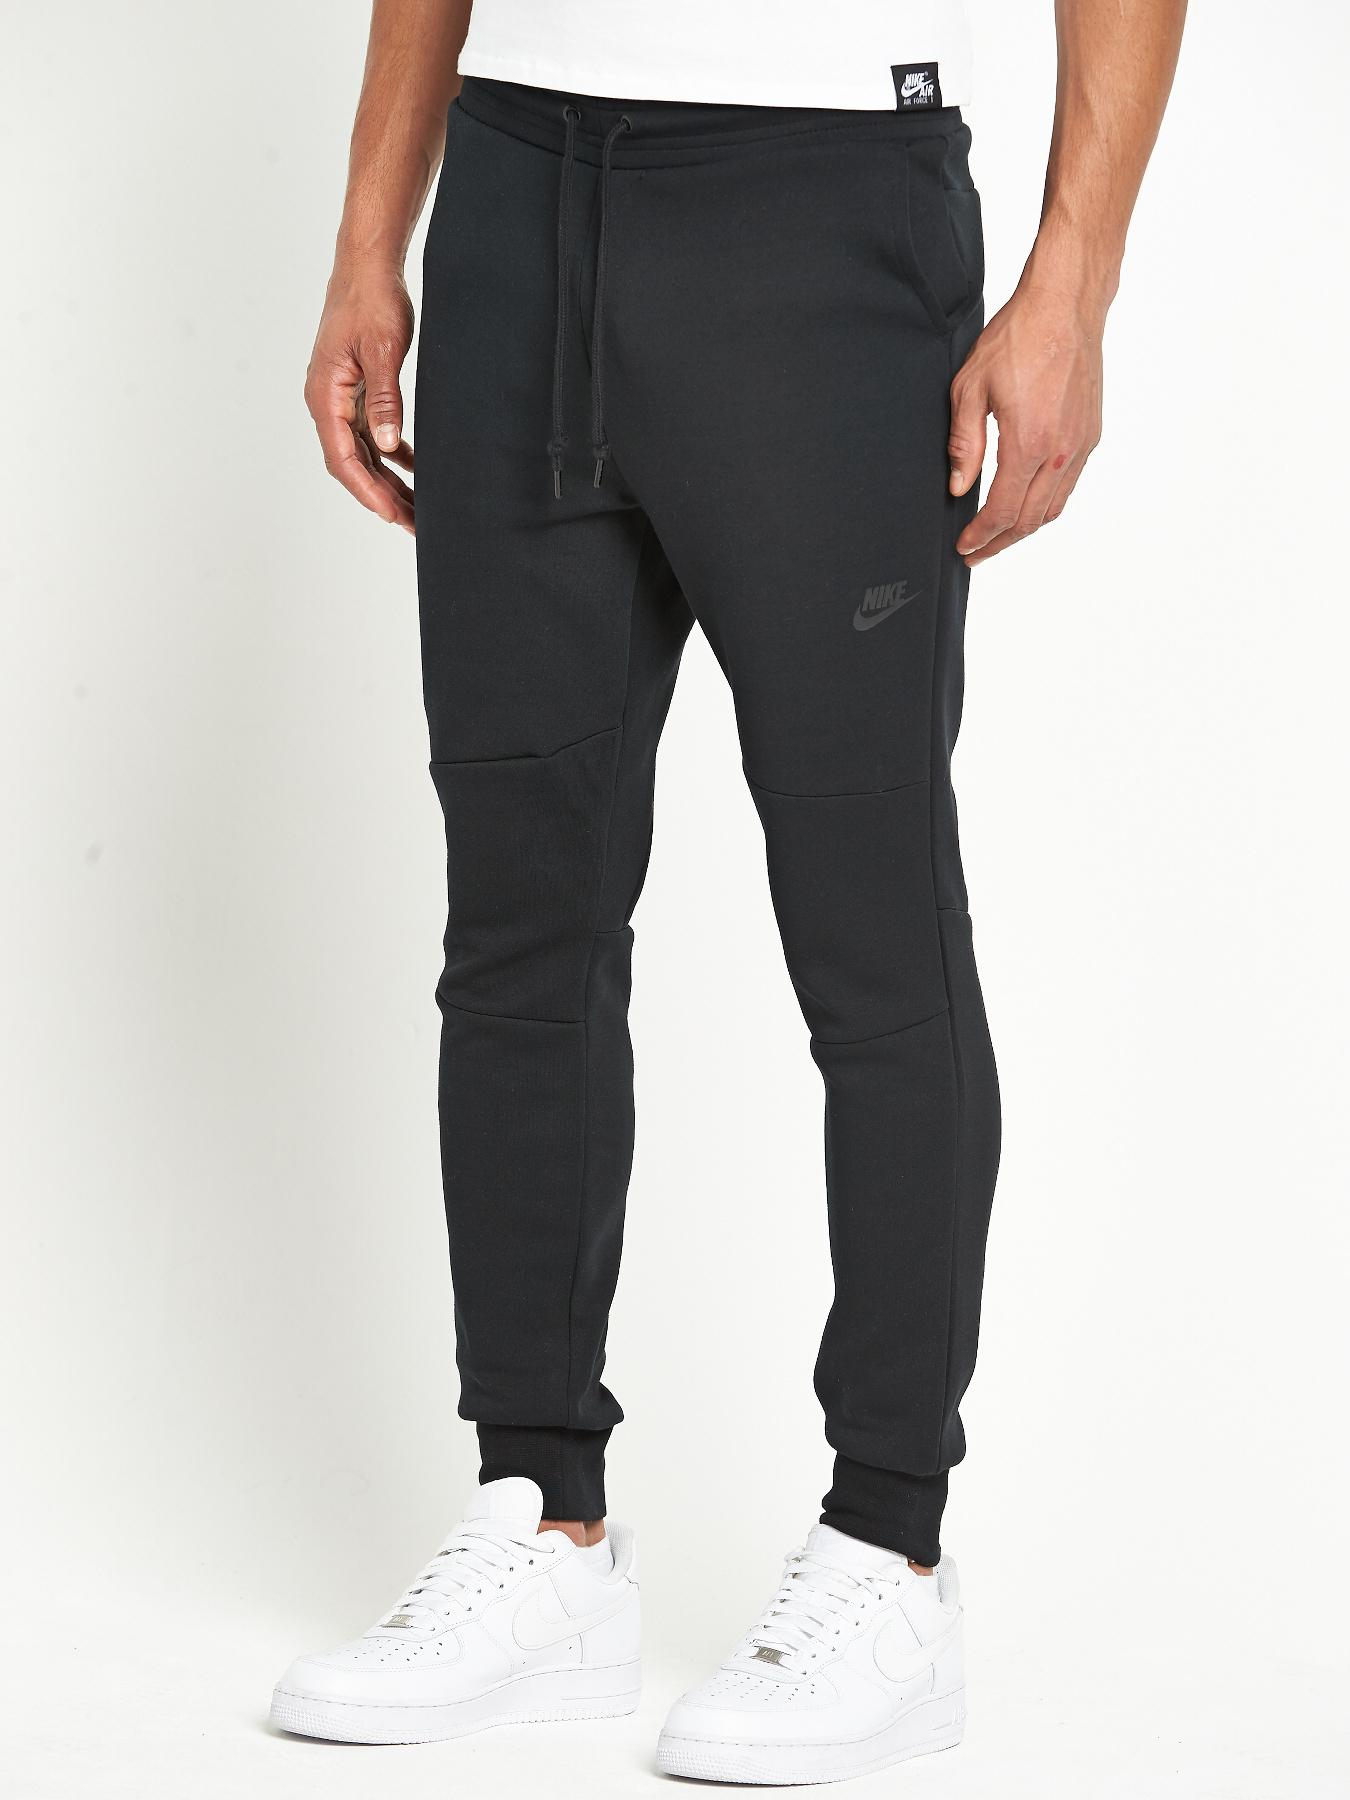 Nike Mens Tech Fleece Pants - Black, Black